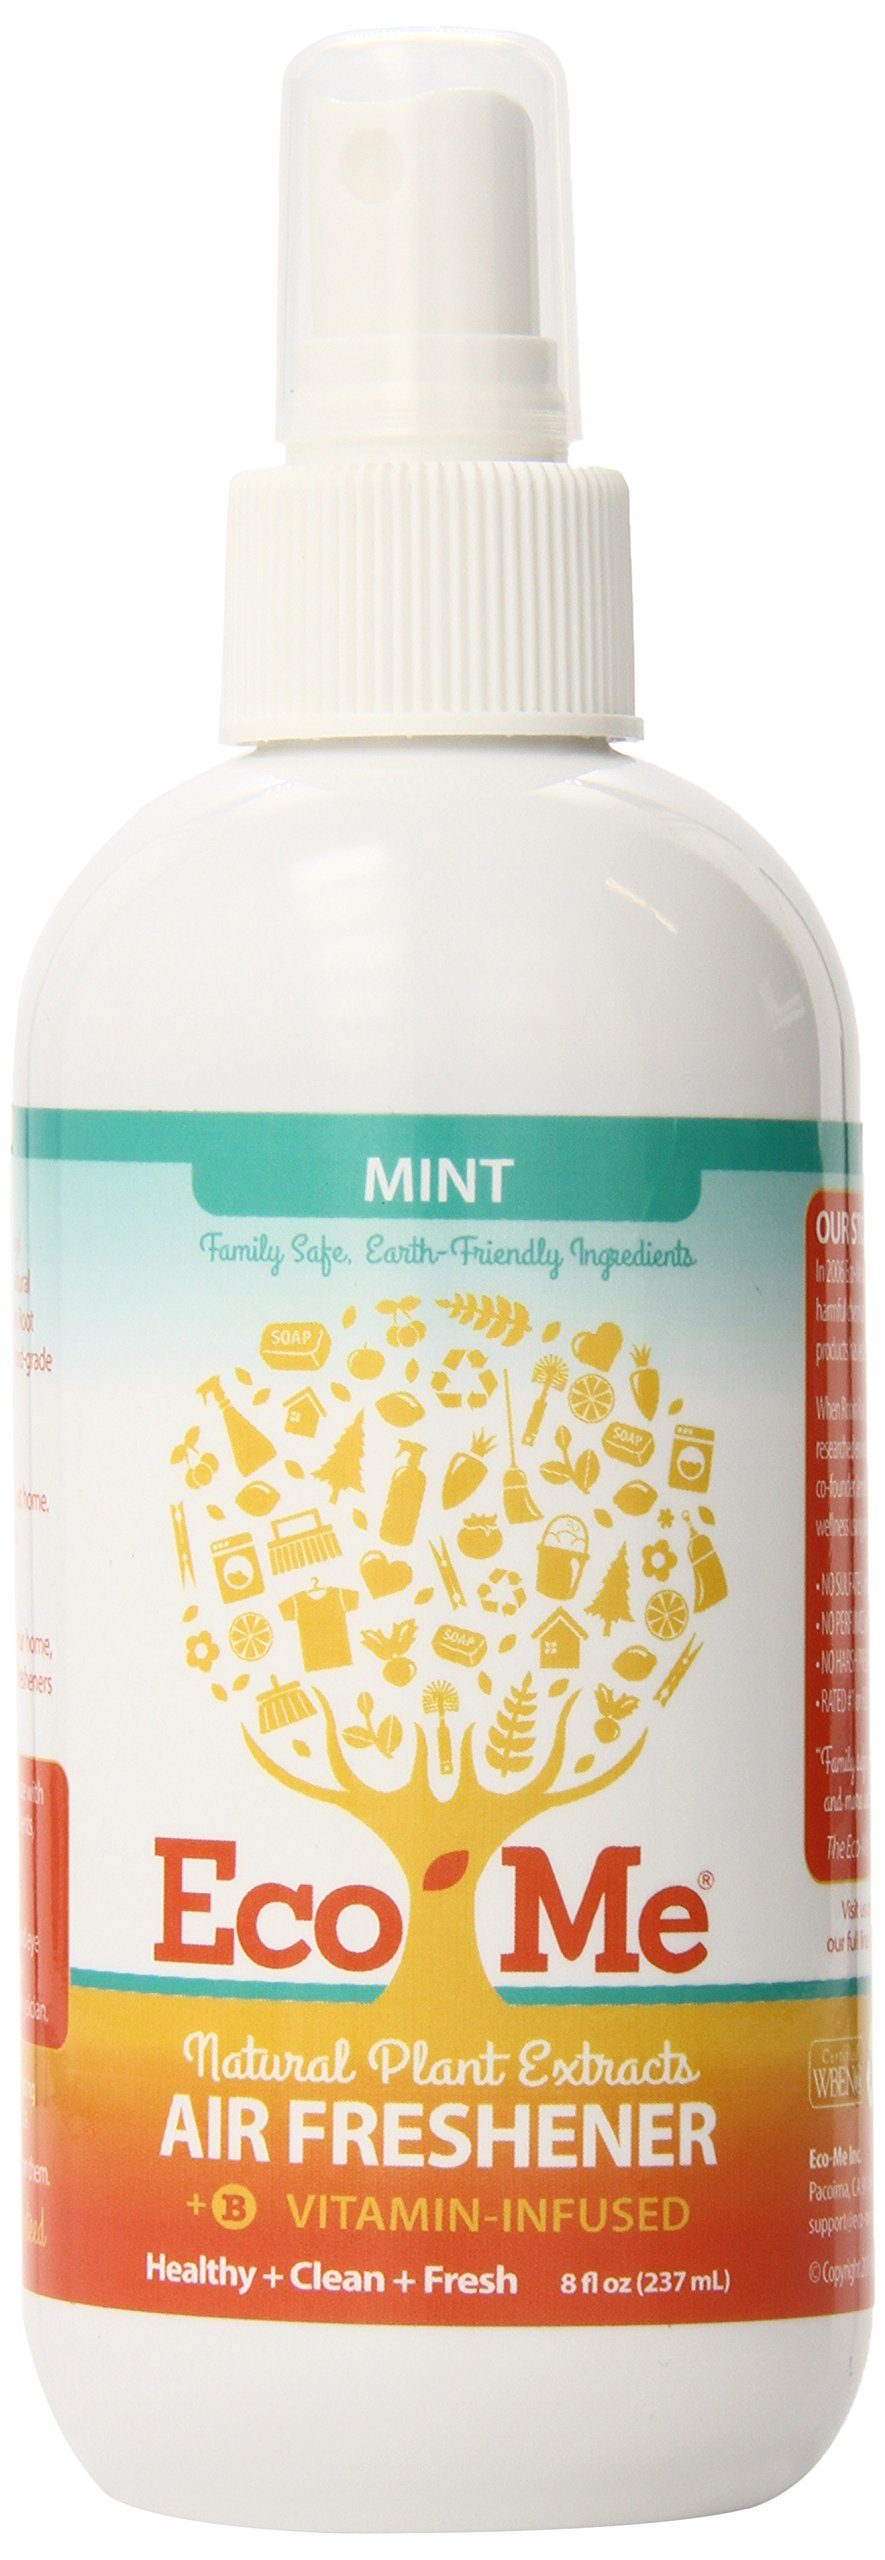 Eco-Me Natural Air Freshener, Vitamin-Infused Mint Scent, 8 Ounce